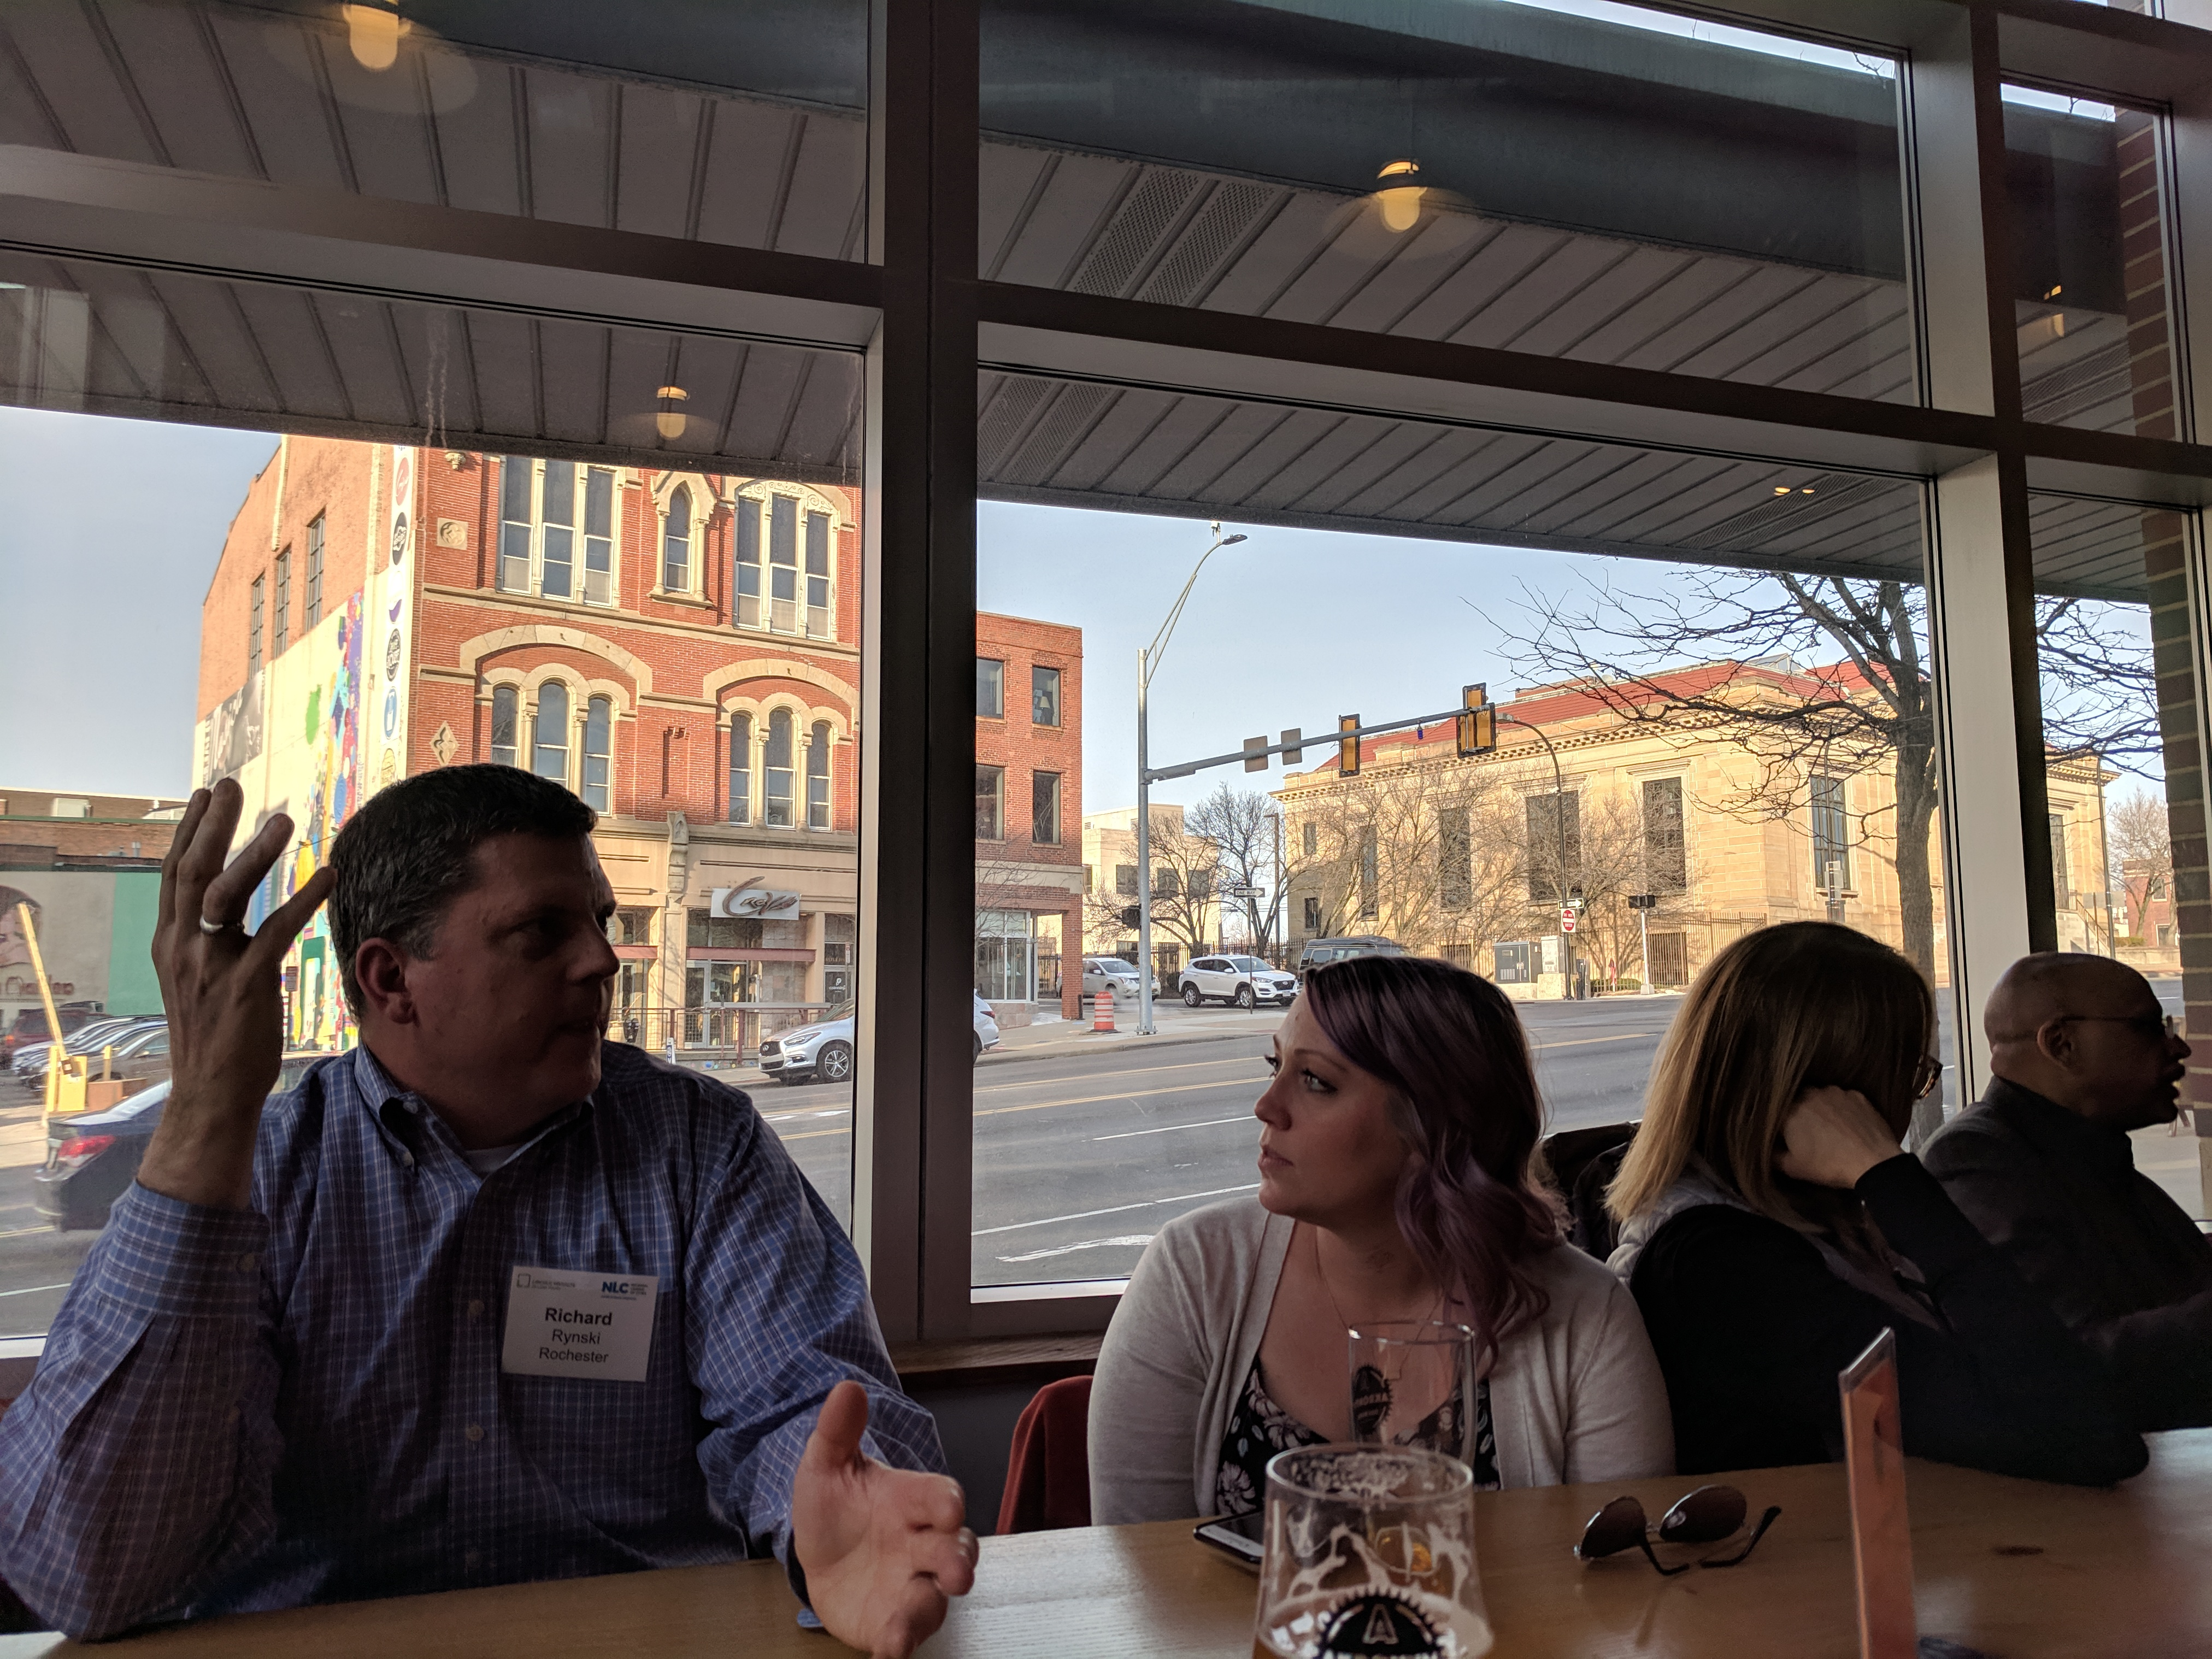 Two community of practice participants enageg in a discussion at a table at the Akronym Brewing Company.